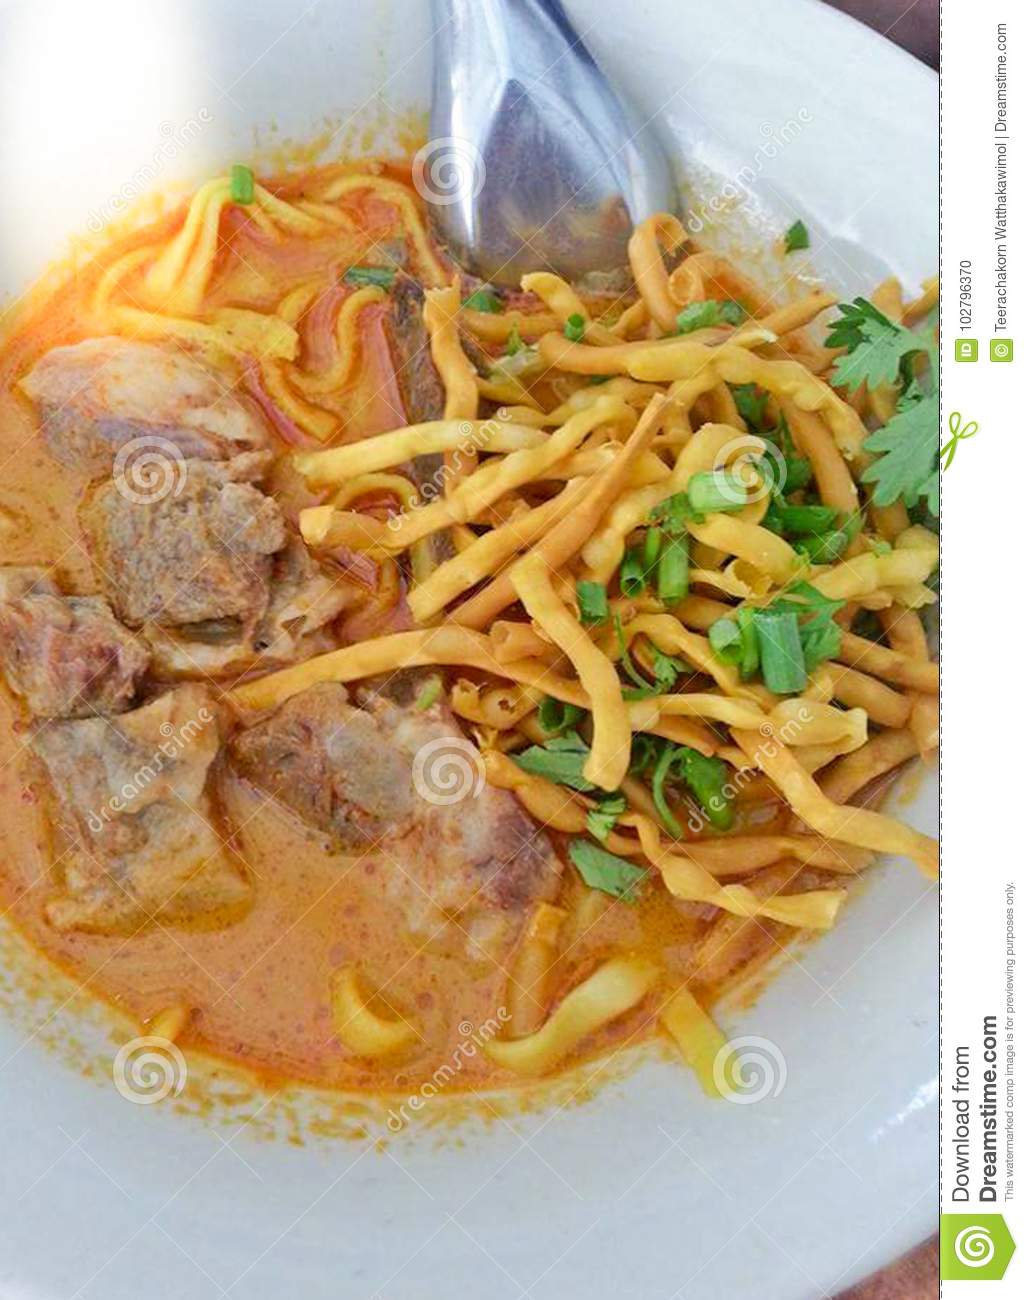 Delicious tasty Thai Northern Style Curried Noodle Soup with Beef in a bowl Khao Soi, Northern Thailand Food background close up